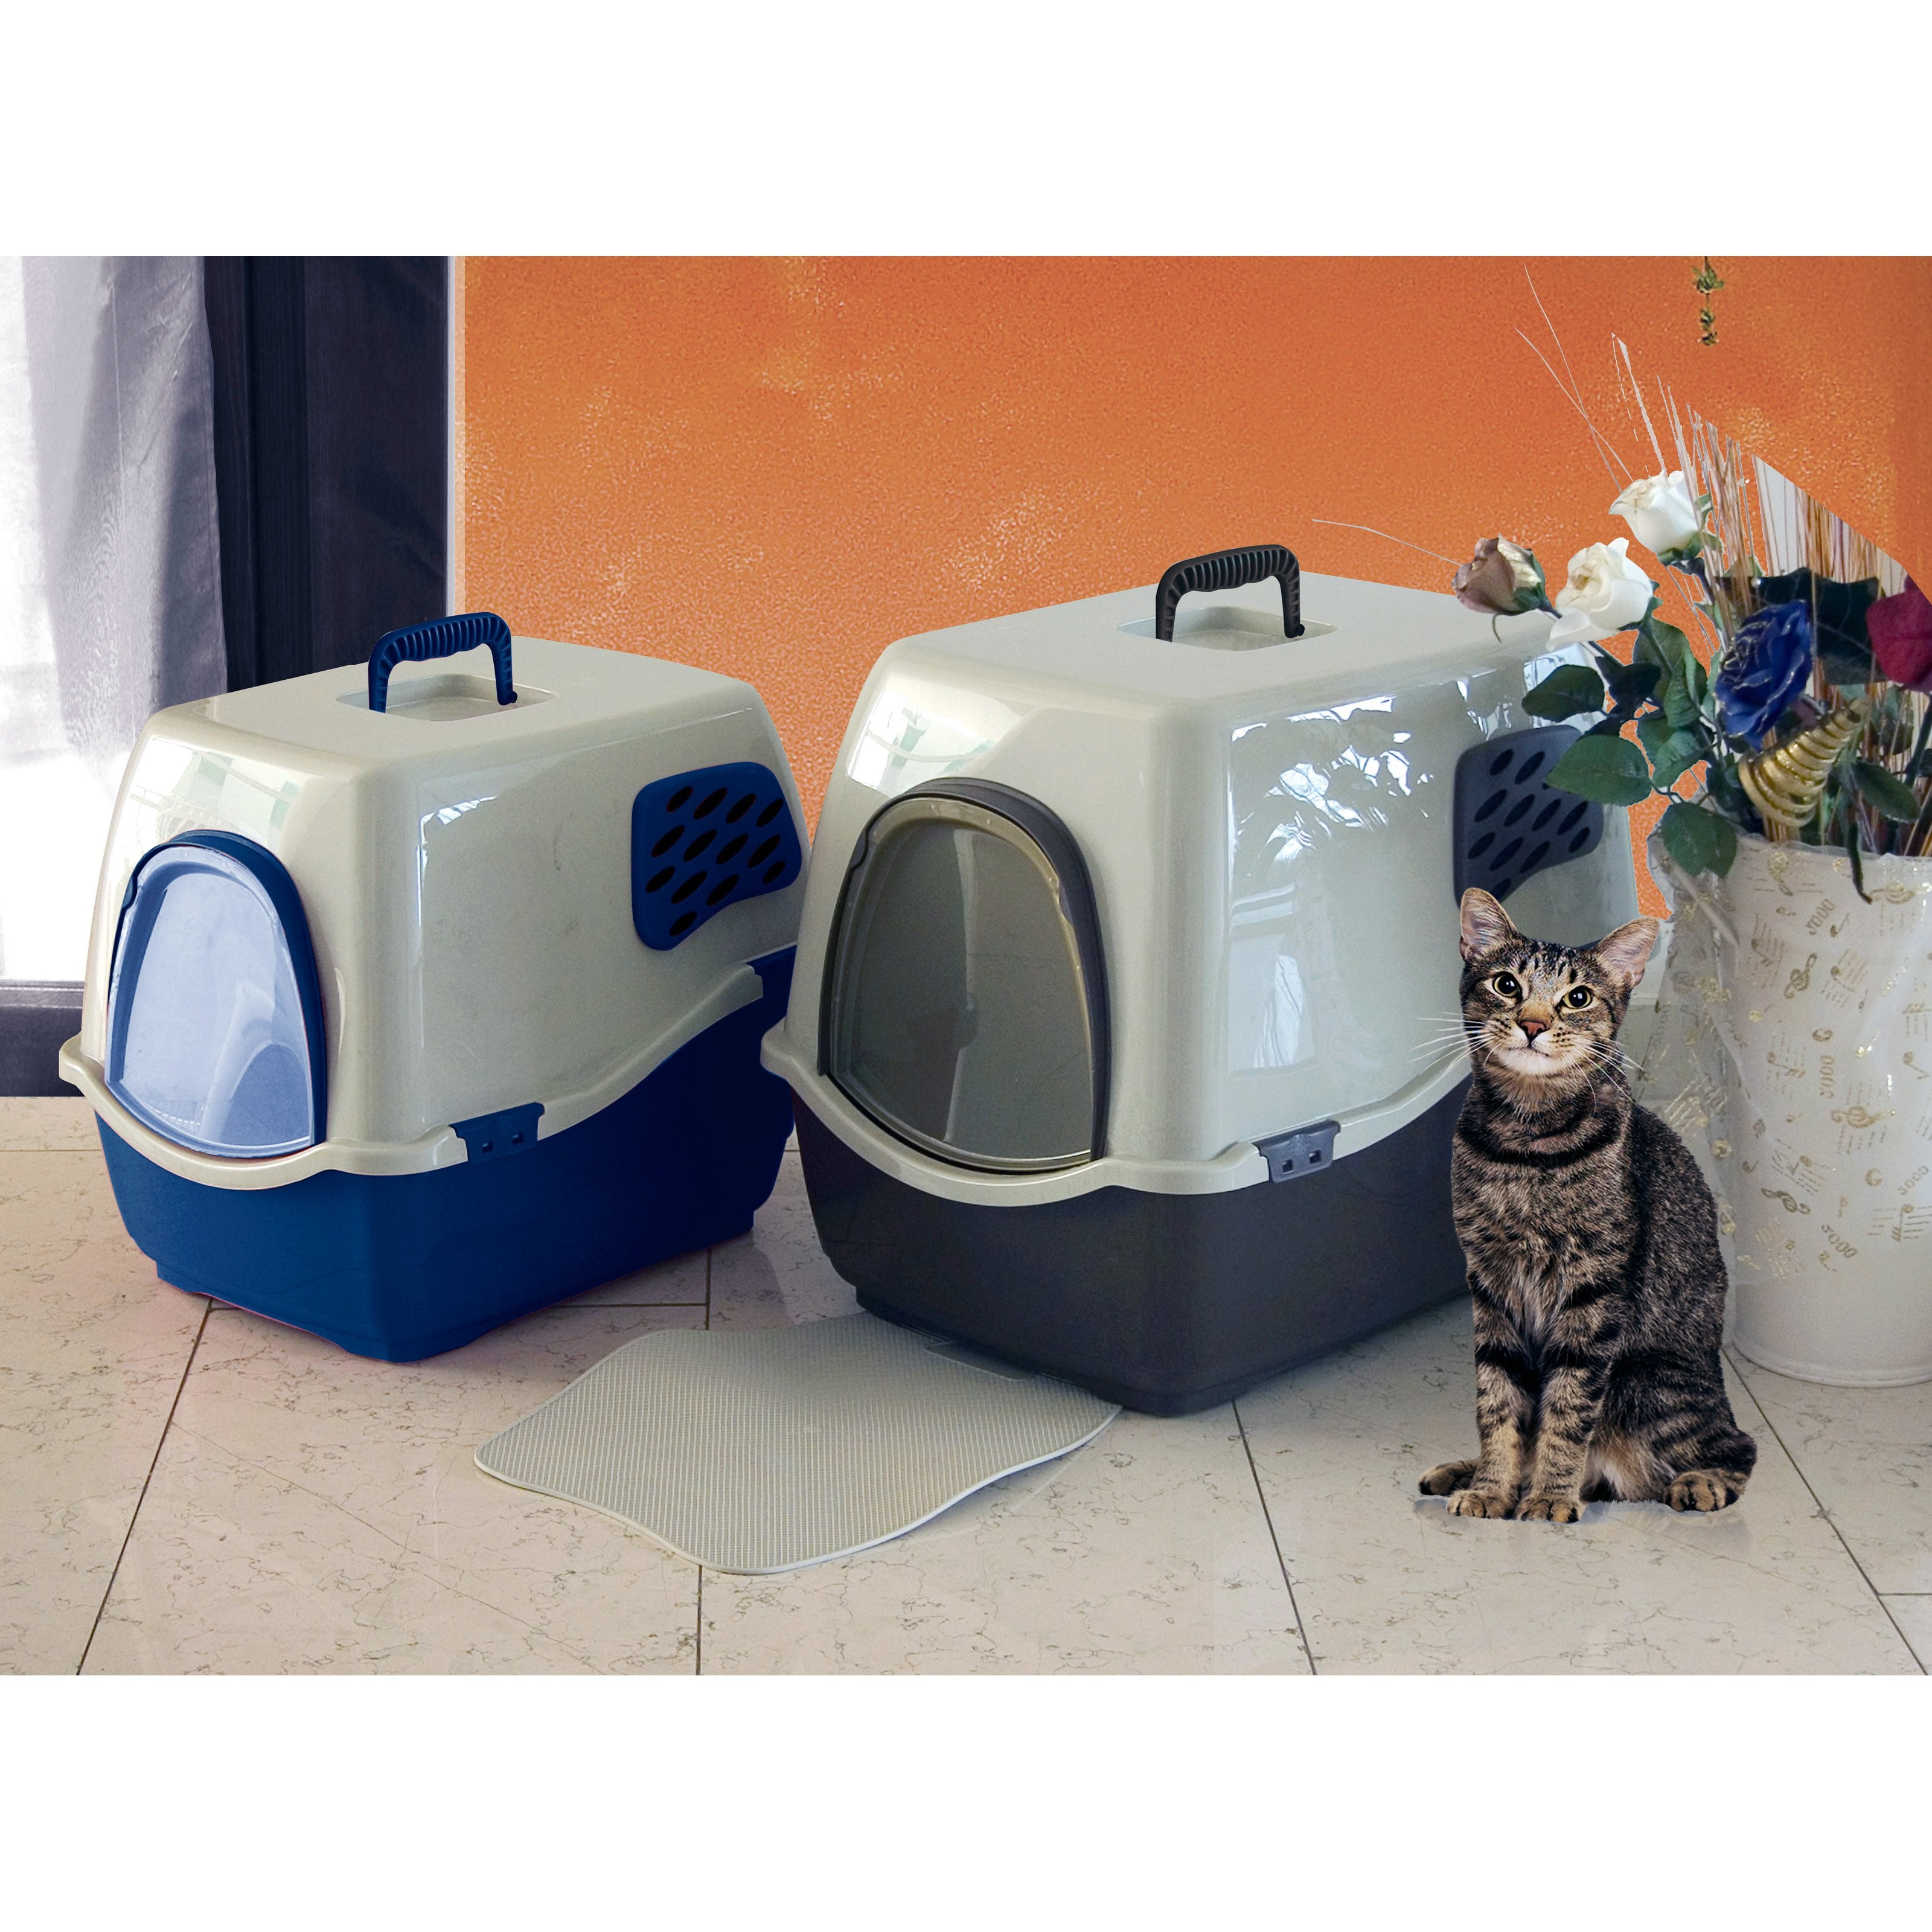 Marchioro Bill 1F Covered Cat Litter Box